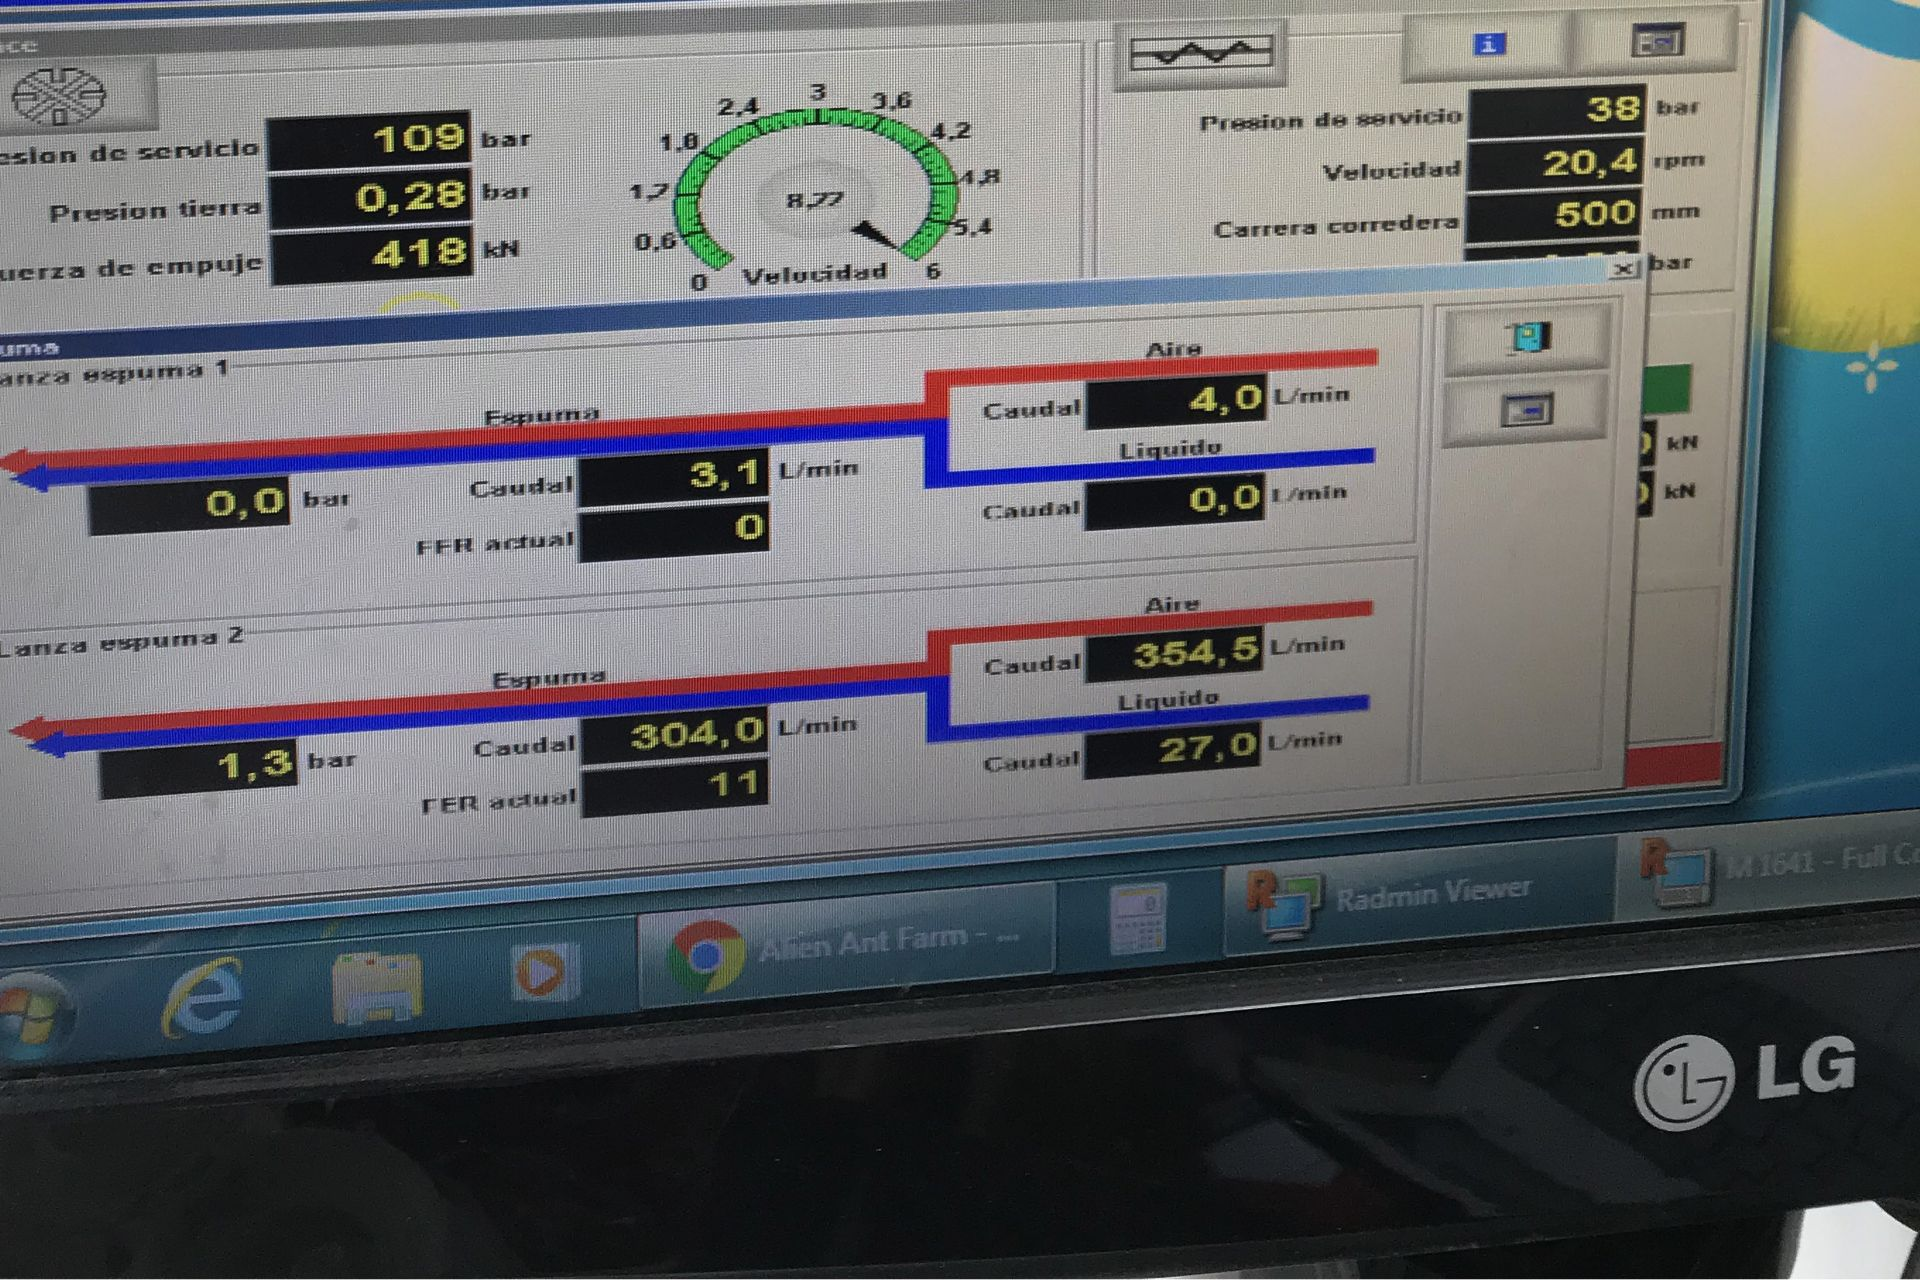 Monitor showing TBM tunneling data